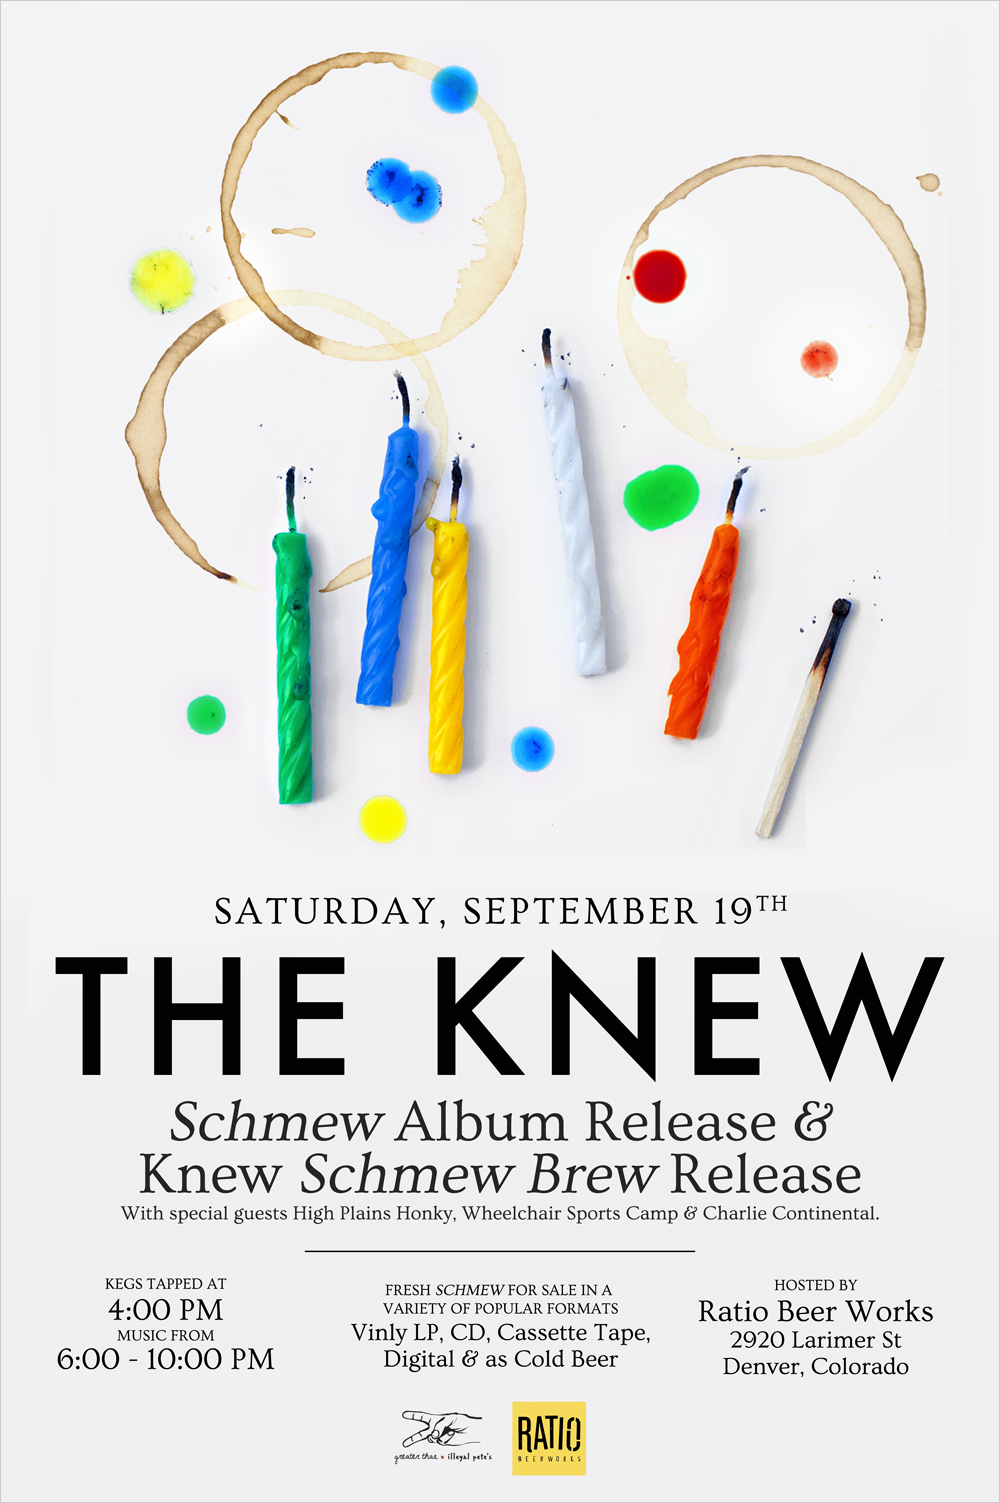 THE KNEW, Album release poster - Todd Roeth